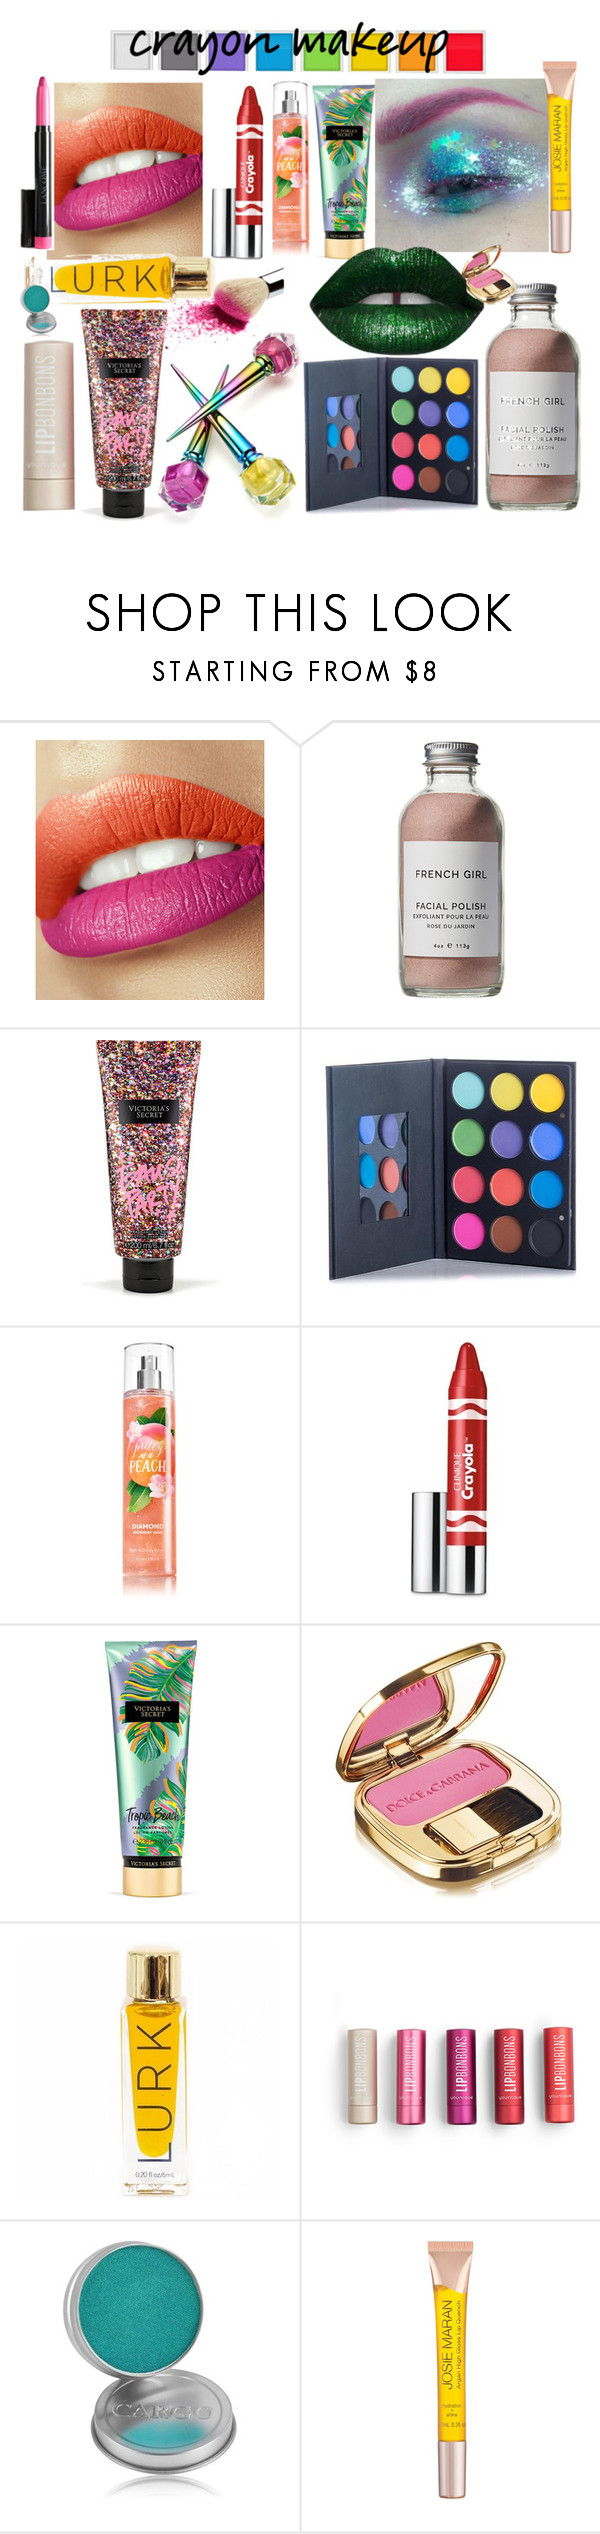 """""""pegatinas"""" by floo-carriillo ❤ liked on Polyvore featuring beauty, French Girl, Victoria's Secret, Clinique, Dolce&Gabbana, CARGO and Josie Maran"""